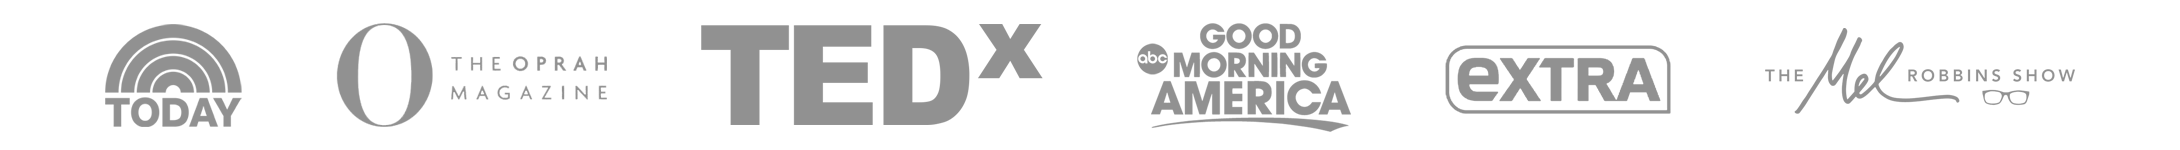 Logos of USA Today, The Oprah Magazine, Tedx, Good Morning America, Extra, and the Mel Robbins Show